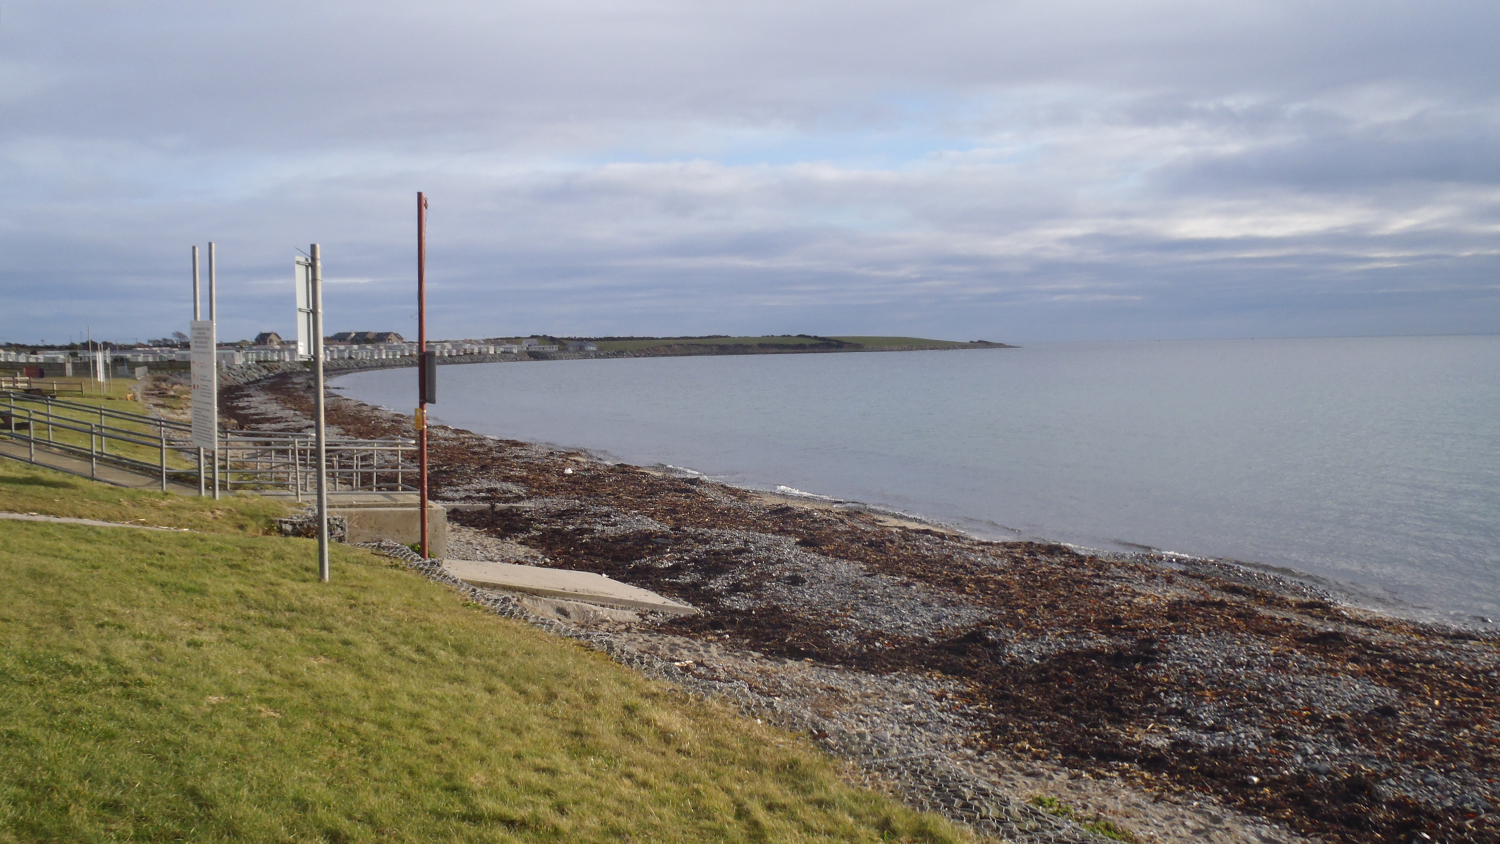 Cranfield Beach at Kilkeel in County Down is an RNLI lifeguarded beach.